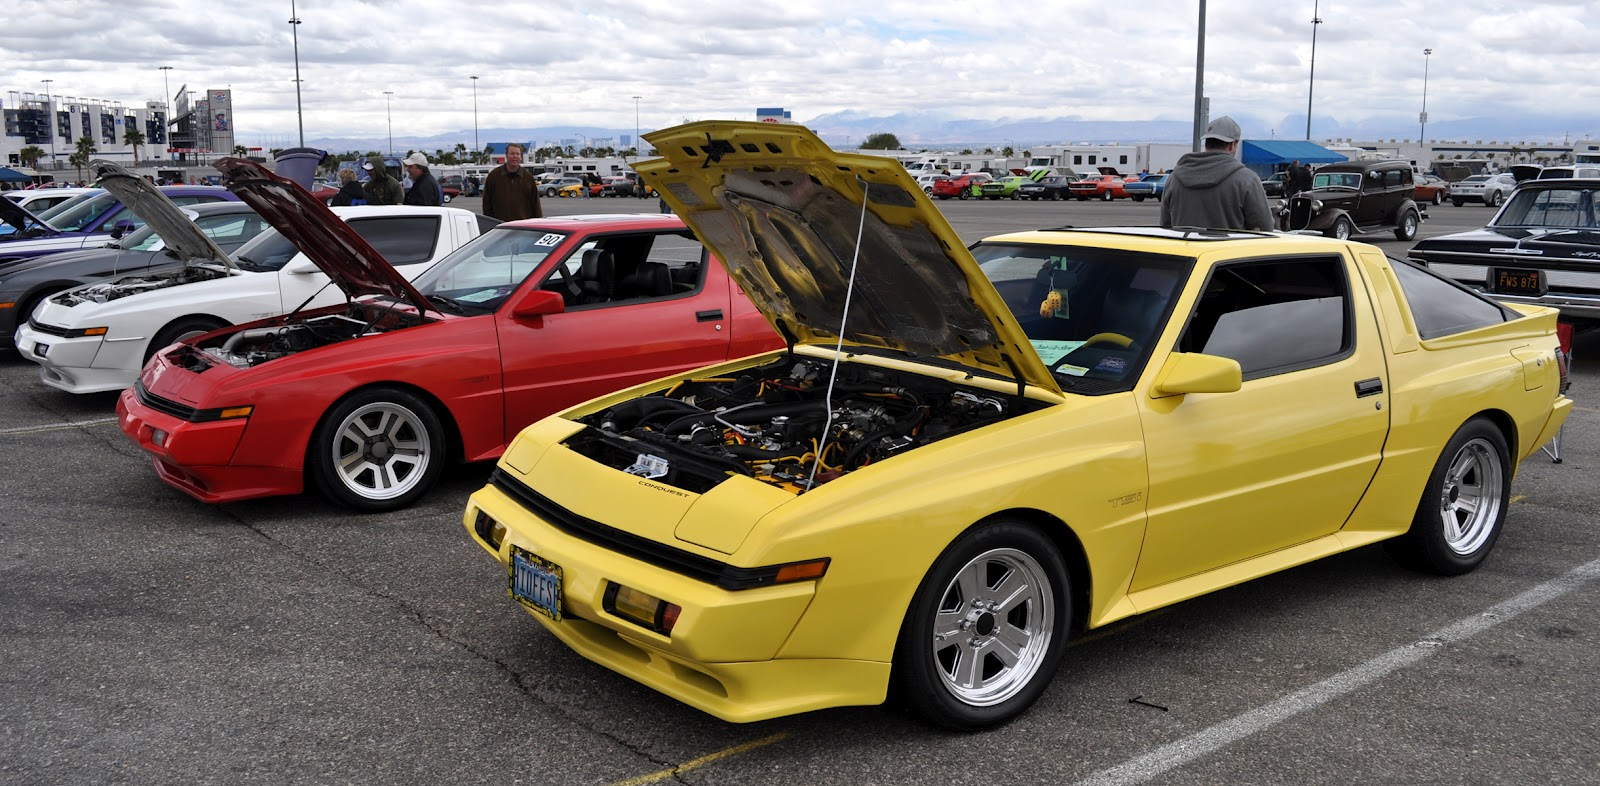 Classic Cars Authority Another Forgotten Mopar Model The Conquest Mitsubishi Starion Dodge Tsi Same As Sure But Anyway Fast From What I Heard A Turbo Blast